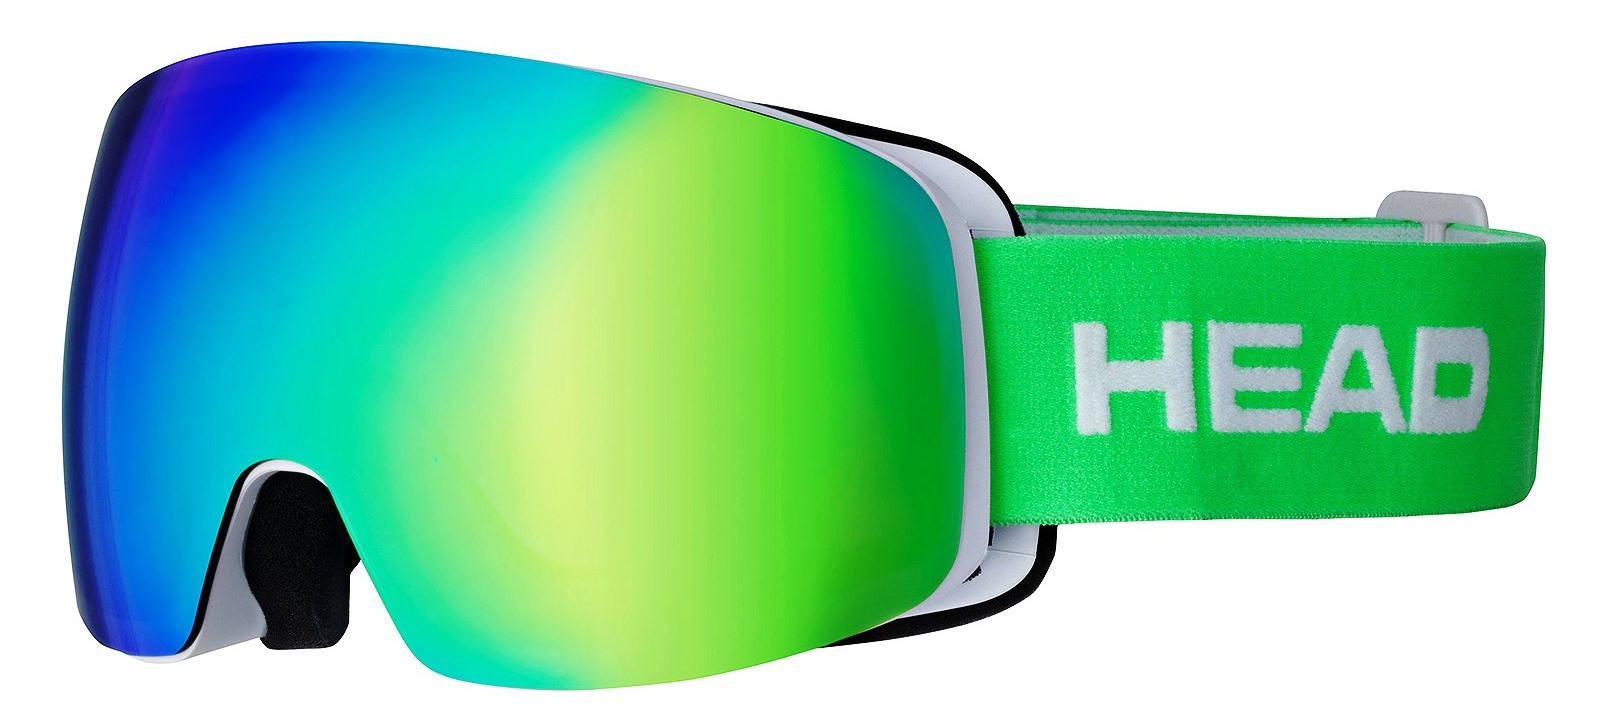 Head GALACTIC FMR green + SpareLens